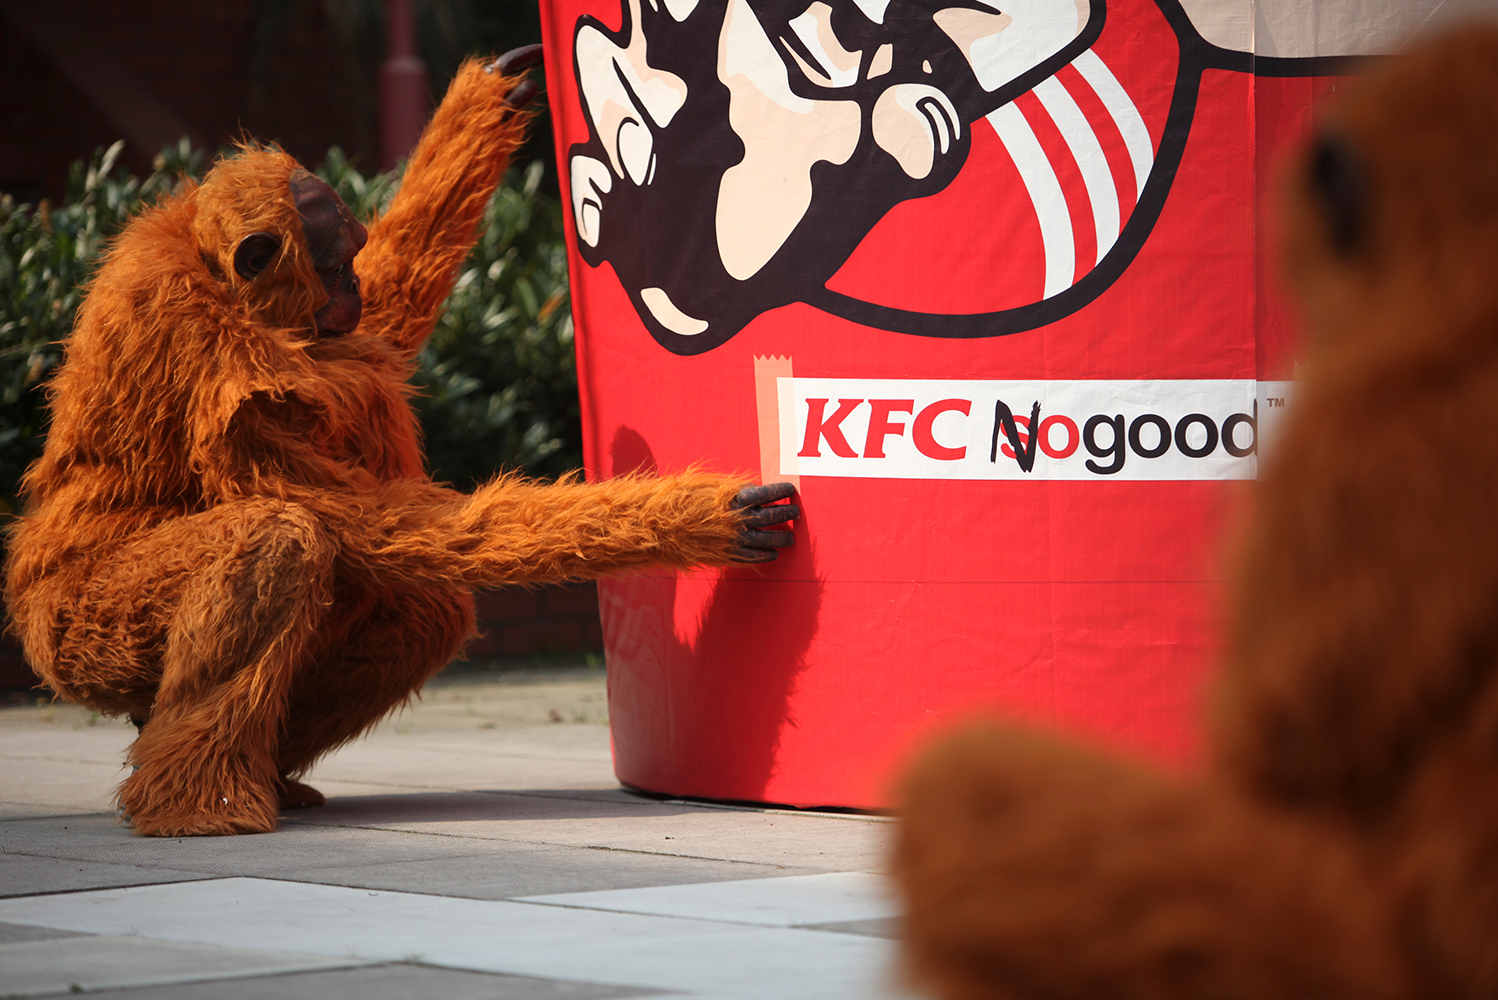 Campaign_Greenpeace_Forests_KFC_NoGood.png